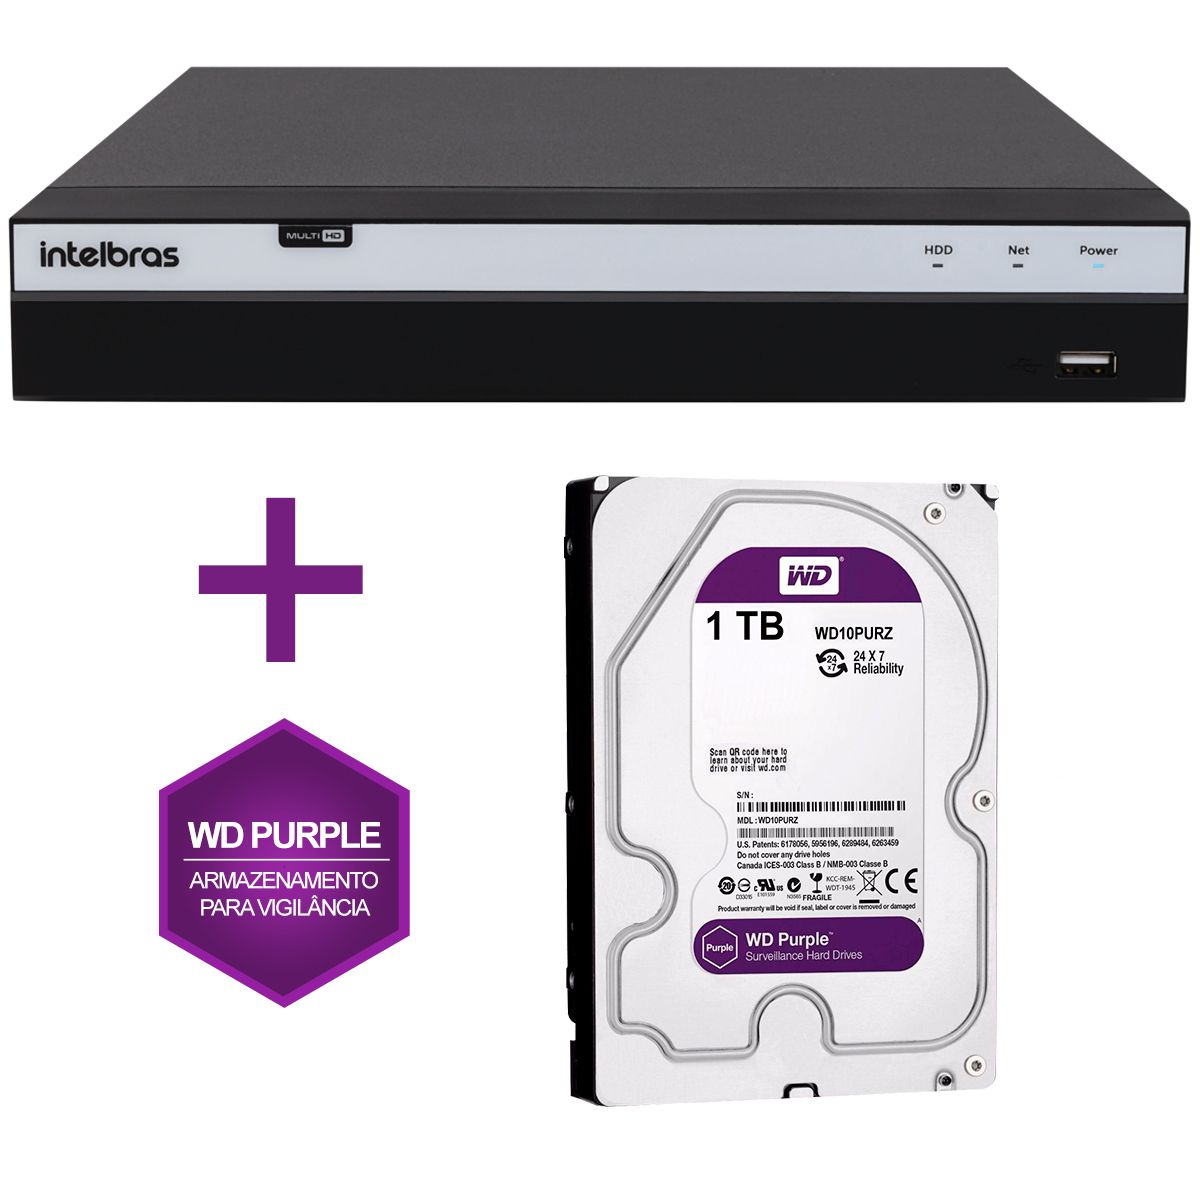 DVR Stand Alone Intelbras MHDX 3108 08 Canais Full HD 1080p Multi HD + 04 Canais IP 5 Mp + HD WD Purple 1TB  - Tudo Forte